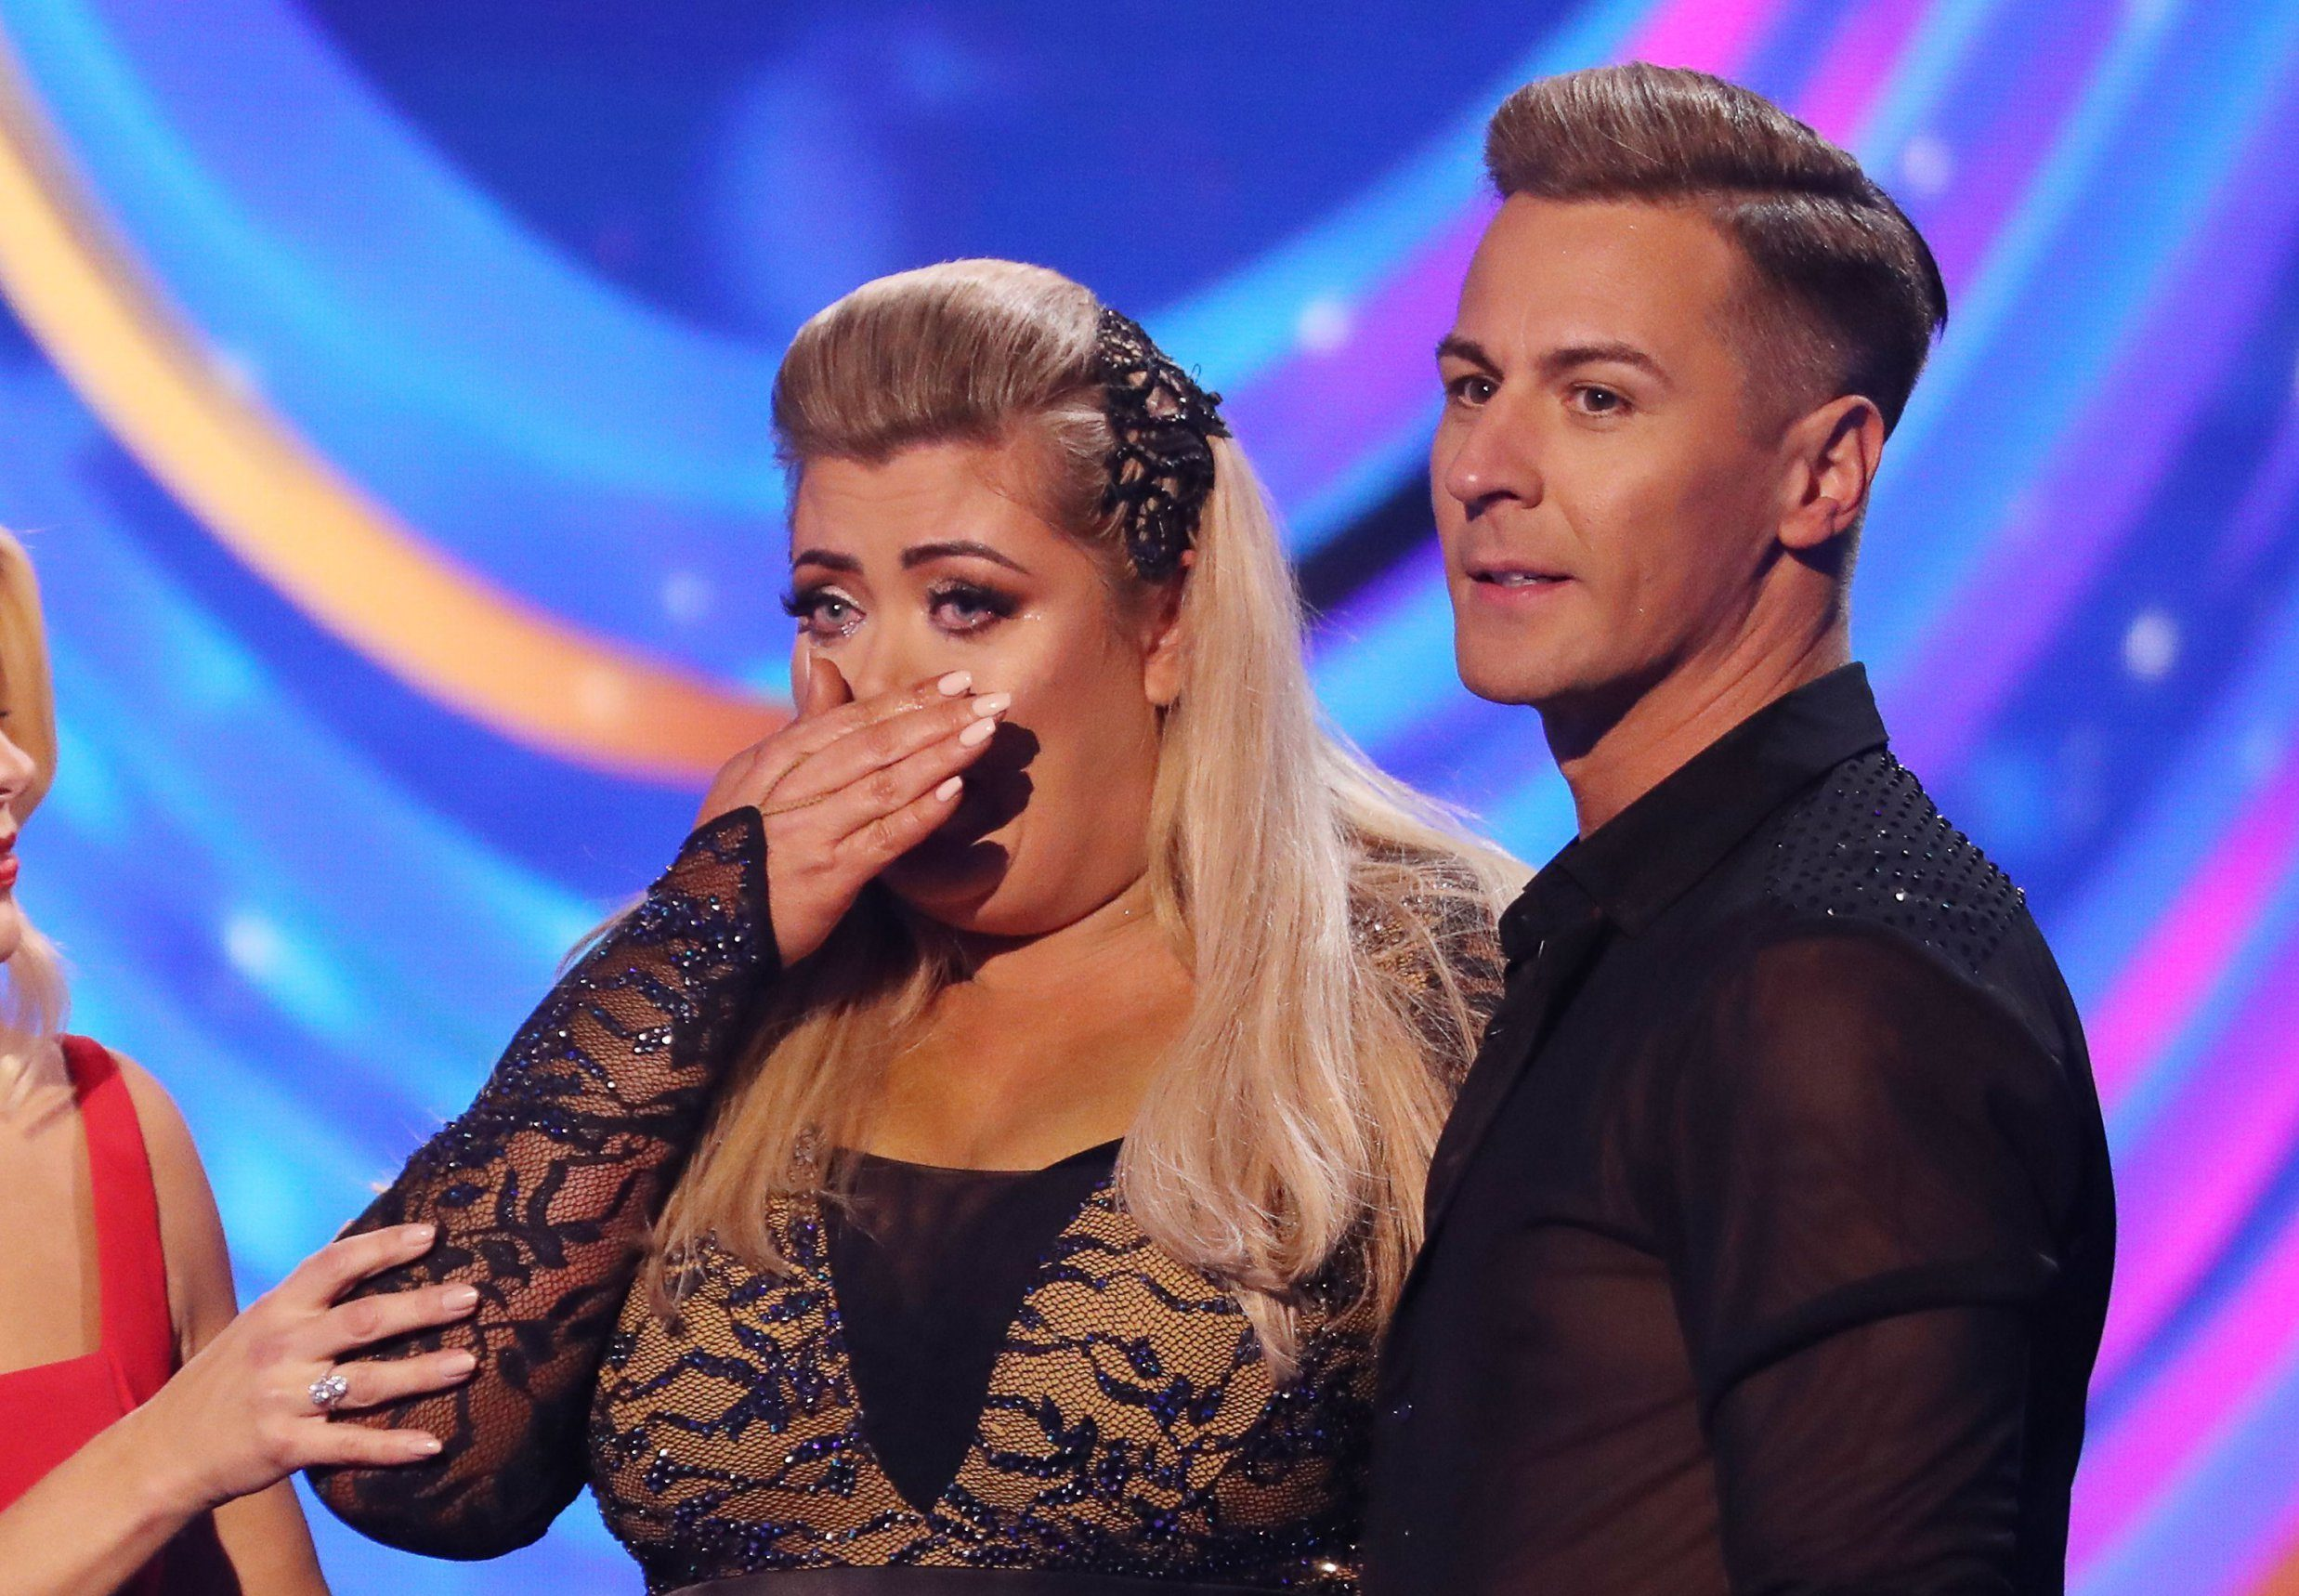 Dancing On Ice ratings plummet as '2.6million switch off' after Gemma Collins exit